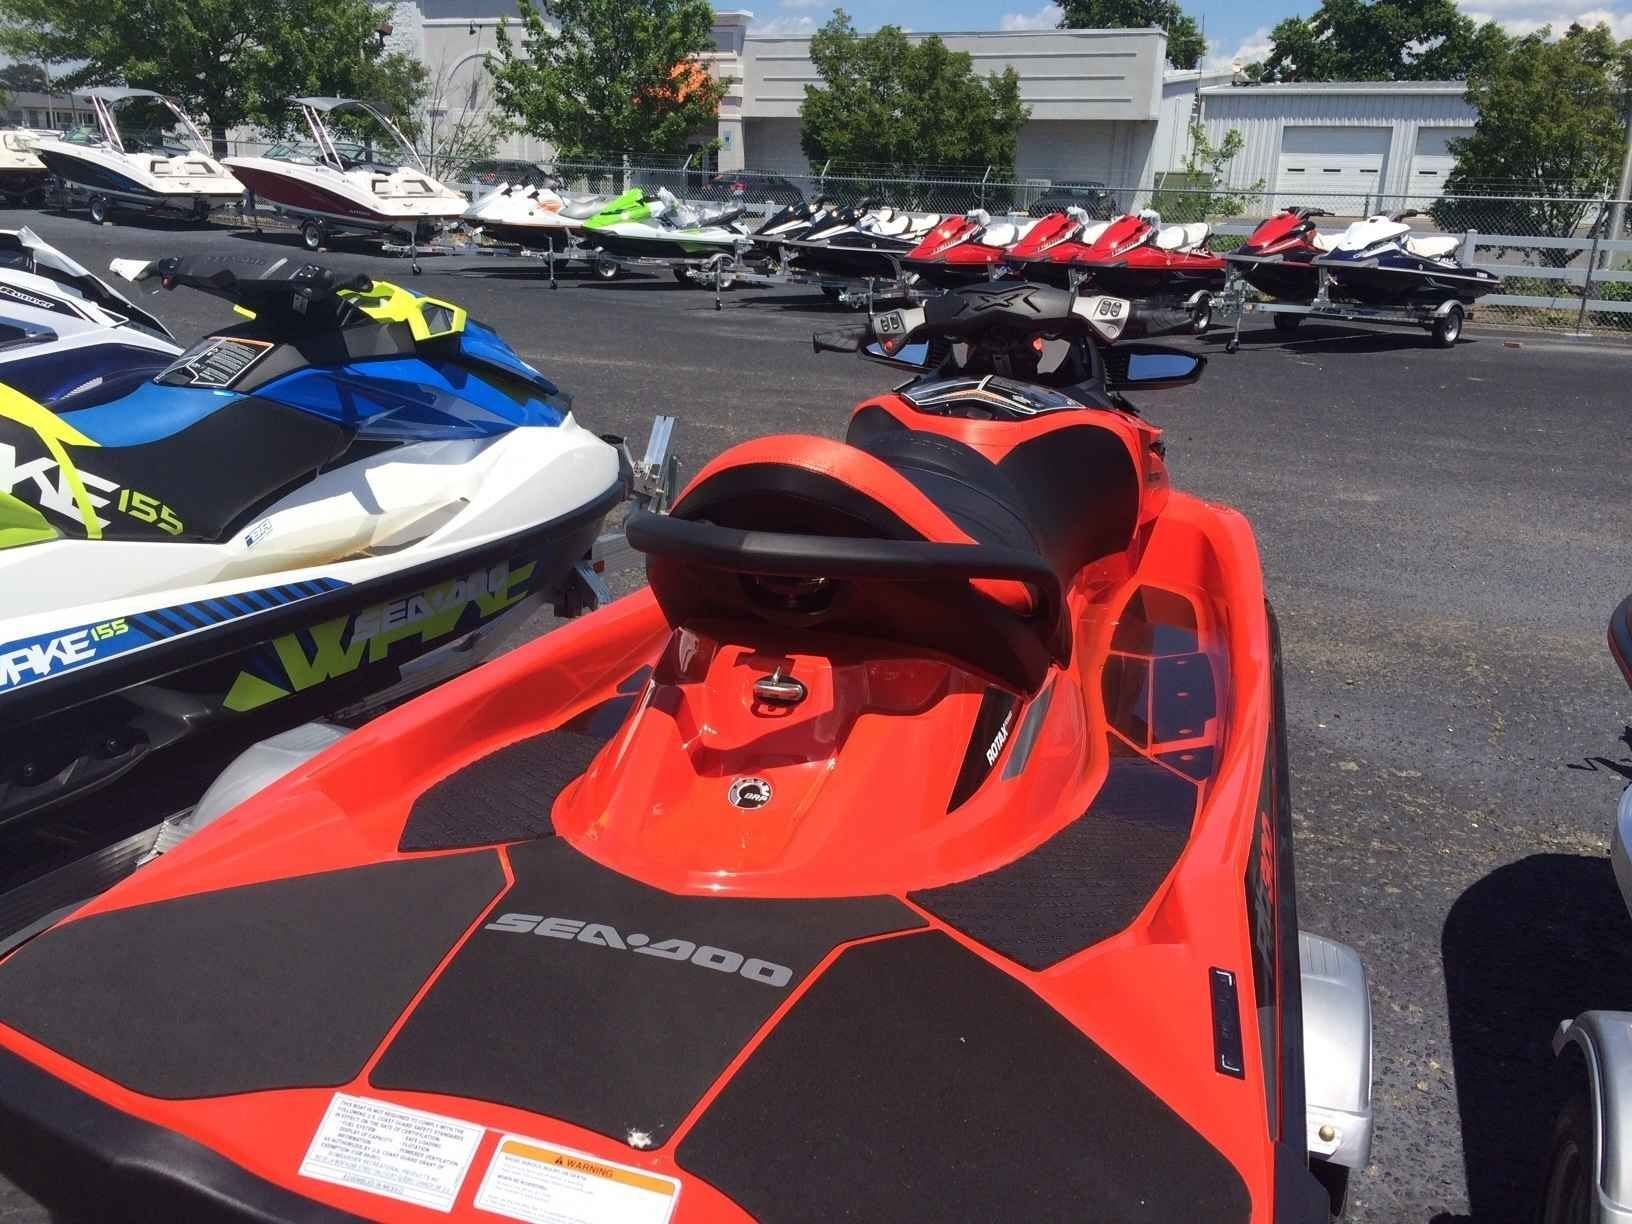 New 2016 Sea Doo RXT X 300 Jet Skis For Sale in North Carolina NC